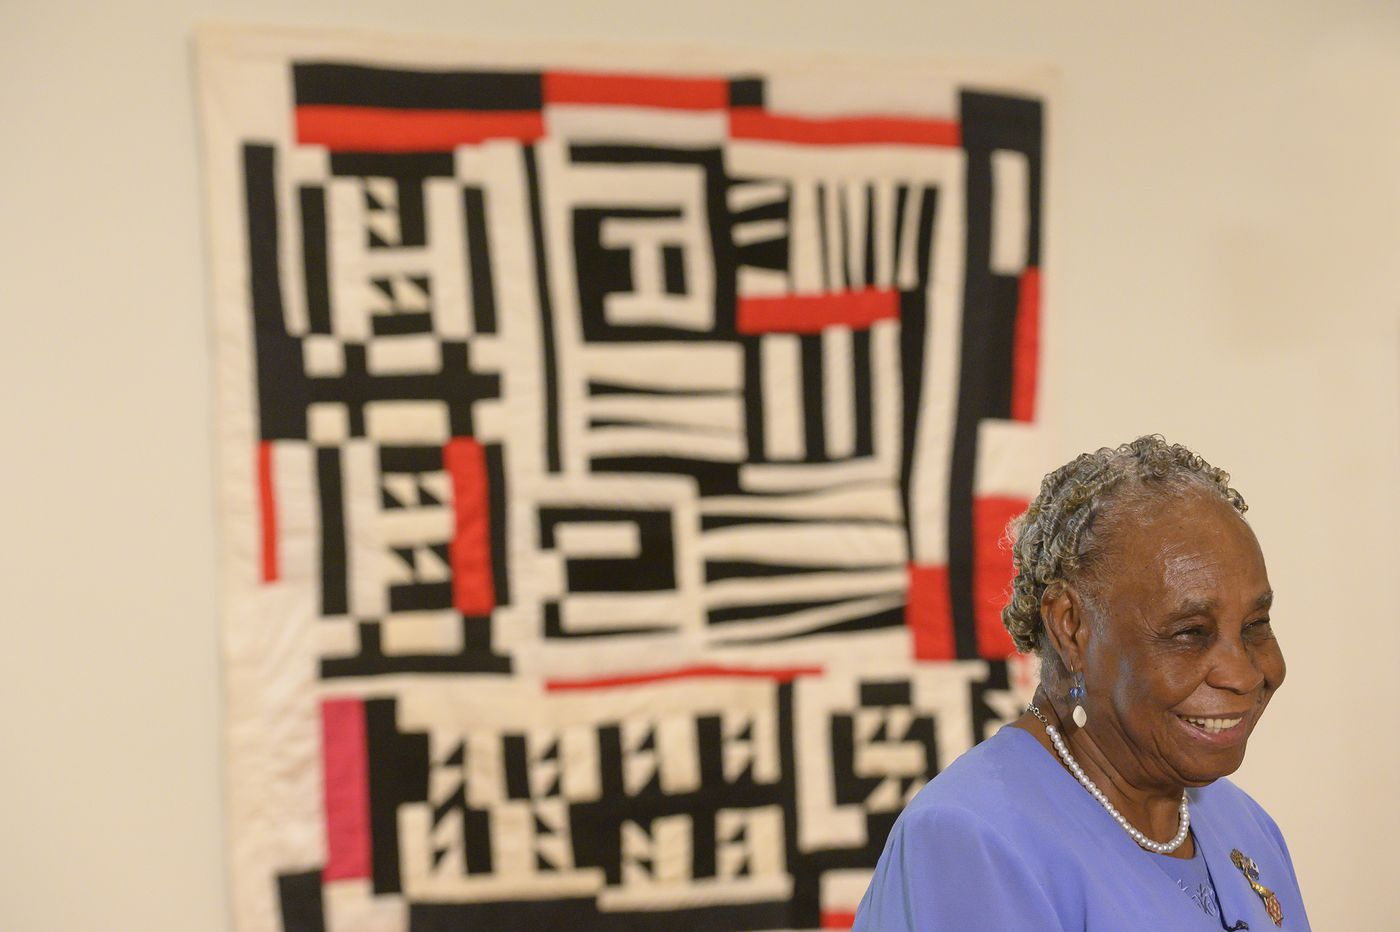 Quilts from the American South are on display at the Philadelphia Museum of Art